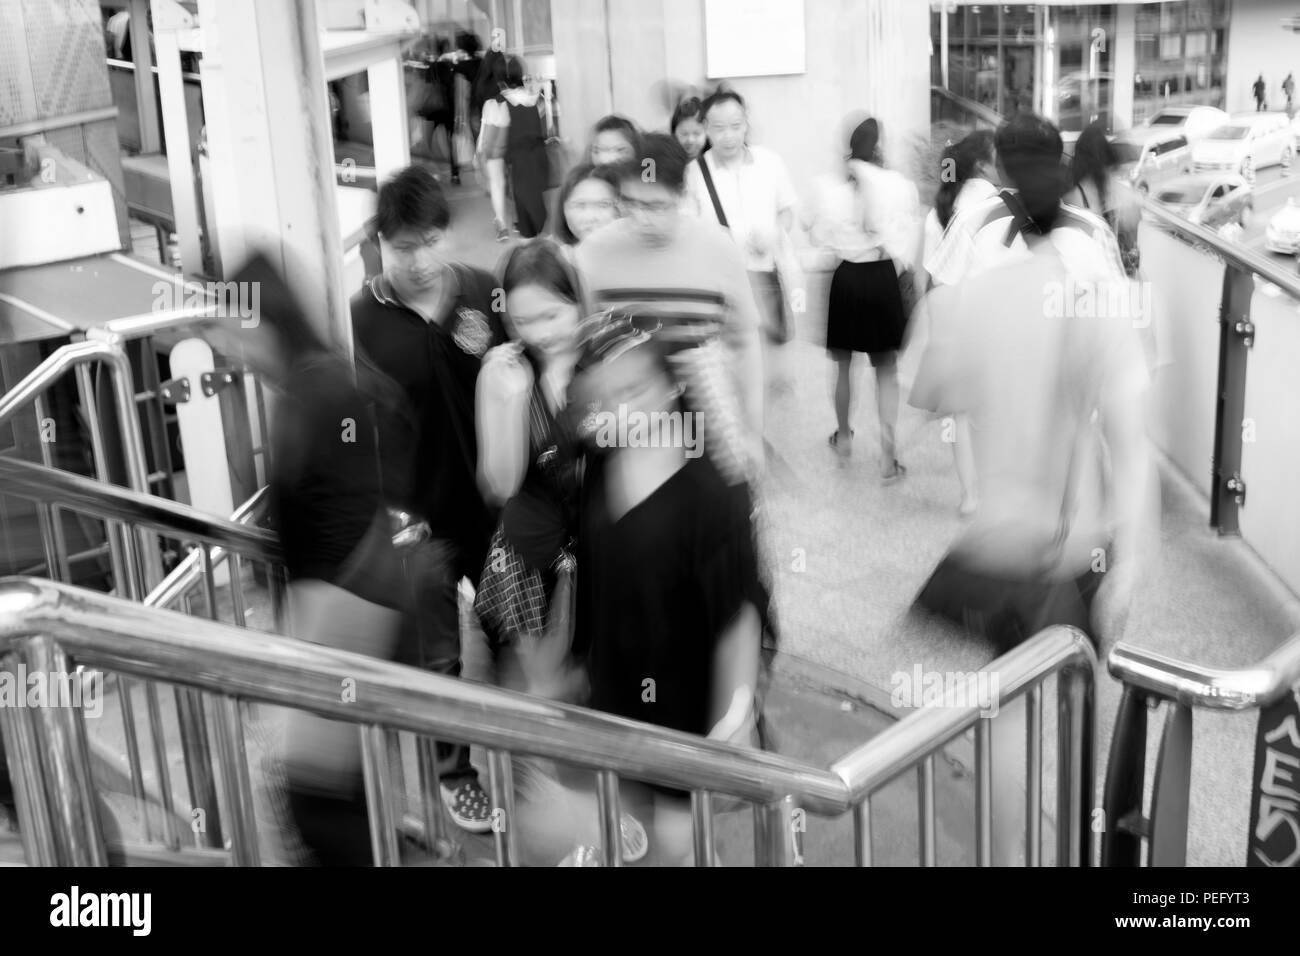 Motion blur people walking on sky walking path to cross the street in Bangkok, Thailand. Black and white filter. - Stock Image